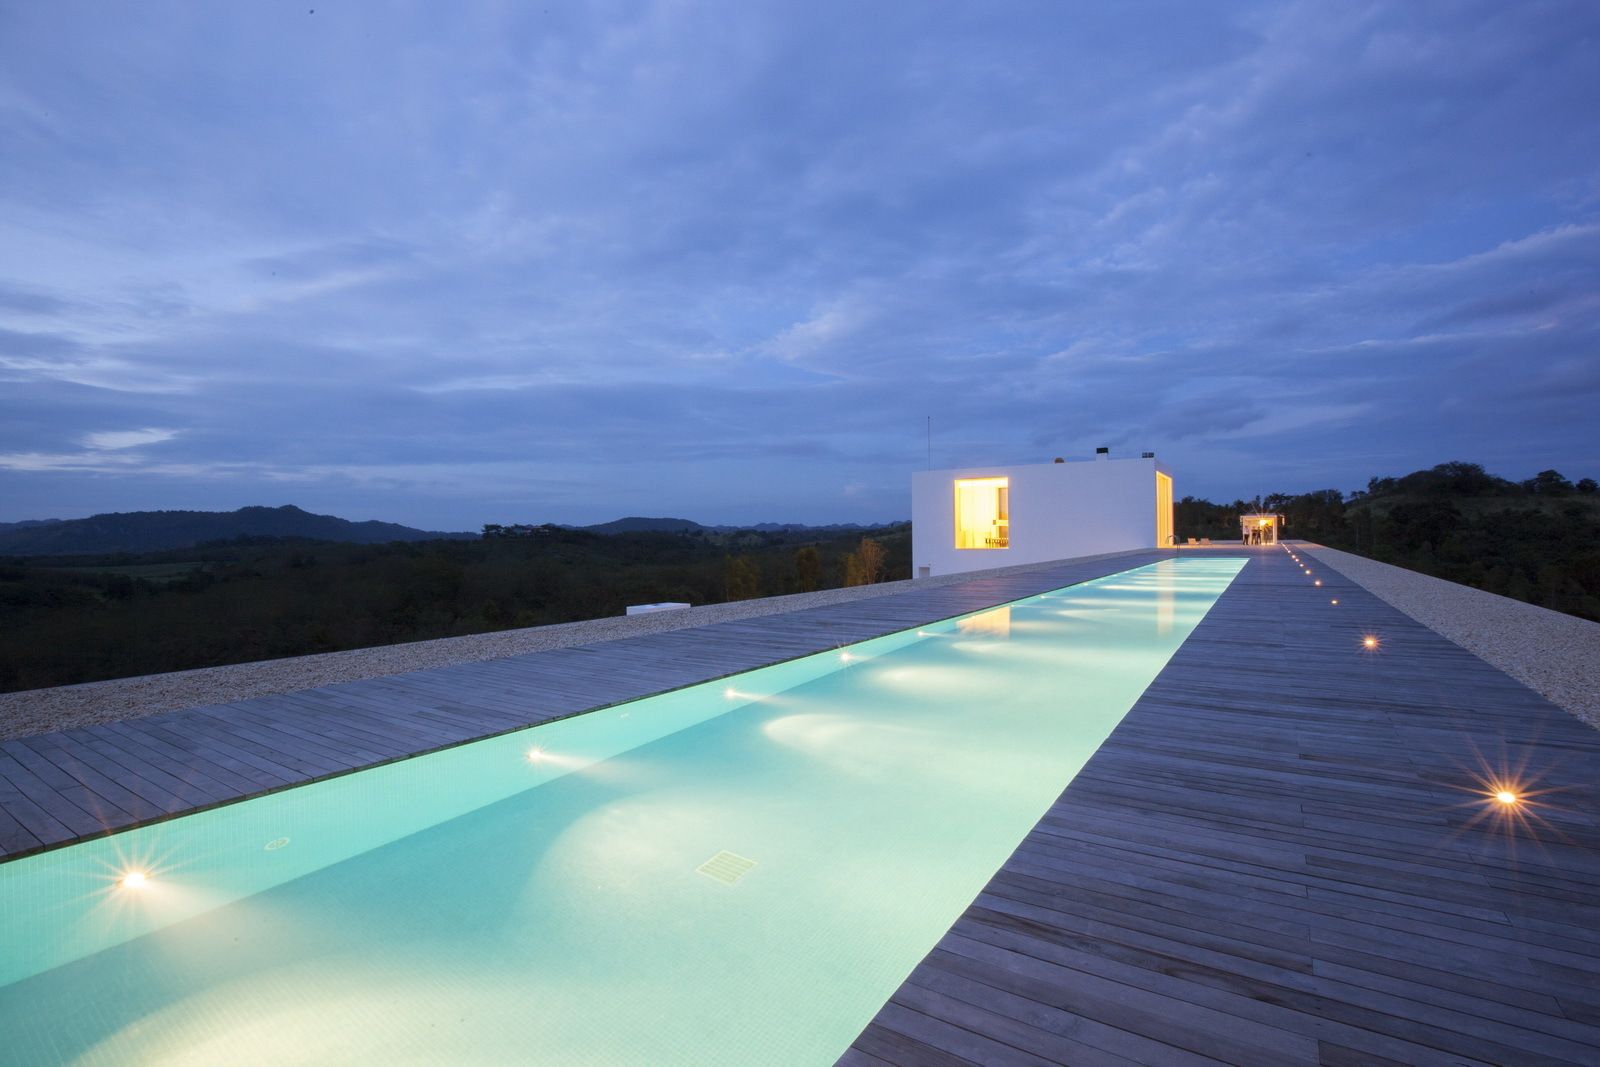 World 39 s longest house 150 meter 492 ft - How far is 50 lengths of a swimming pool ...